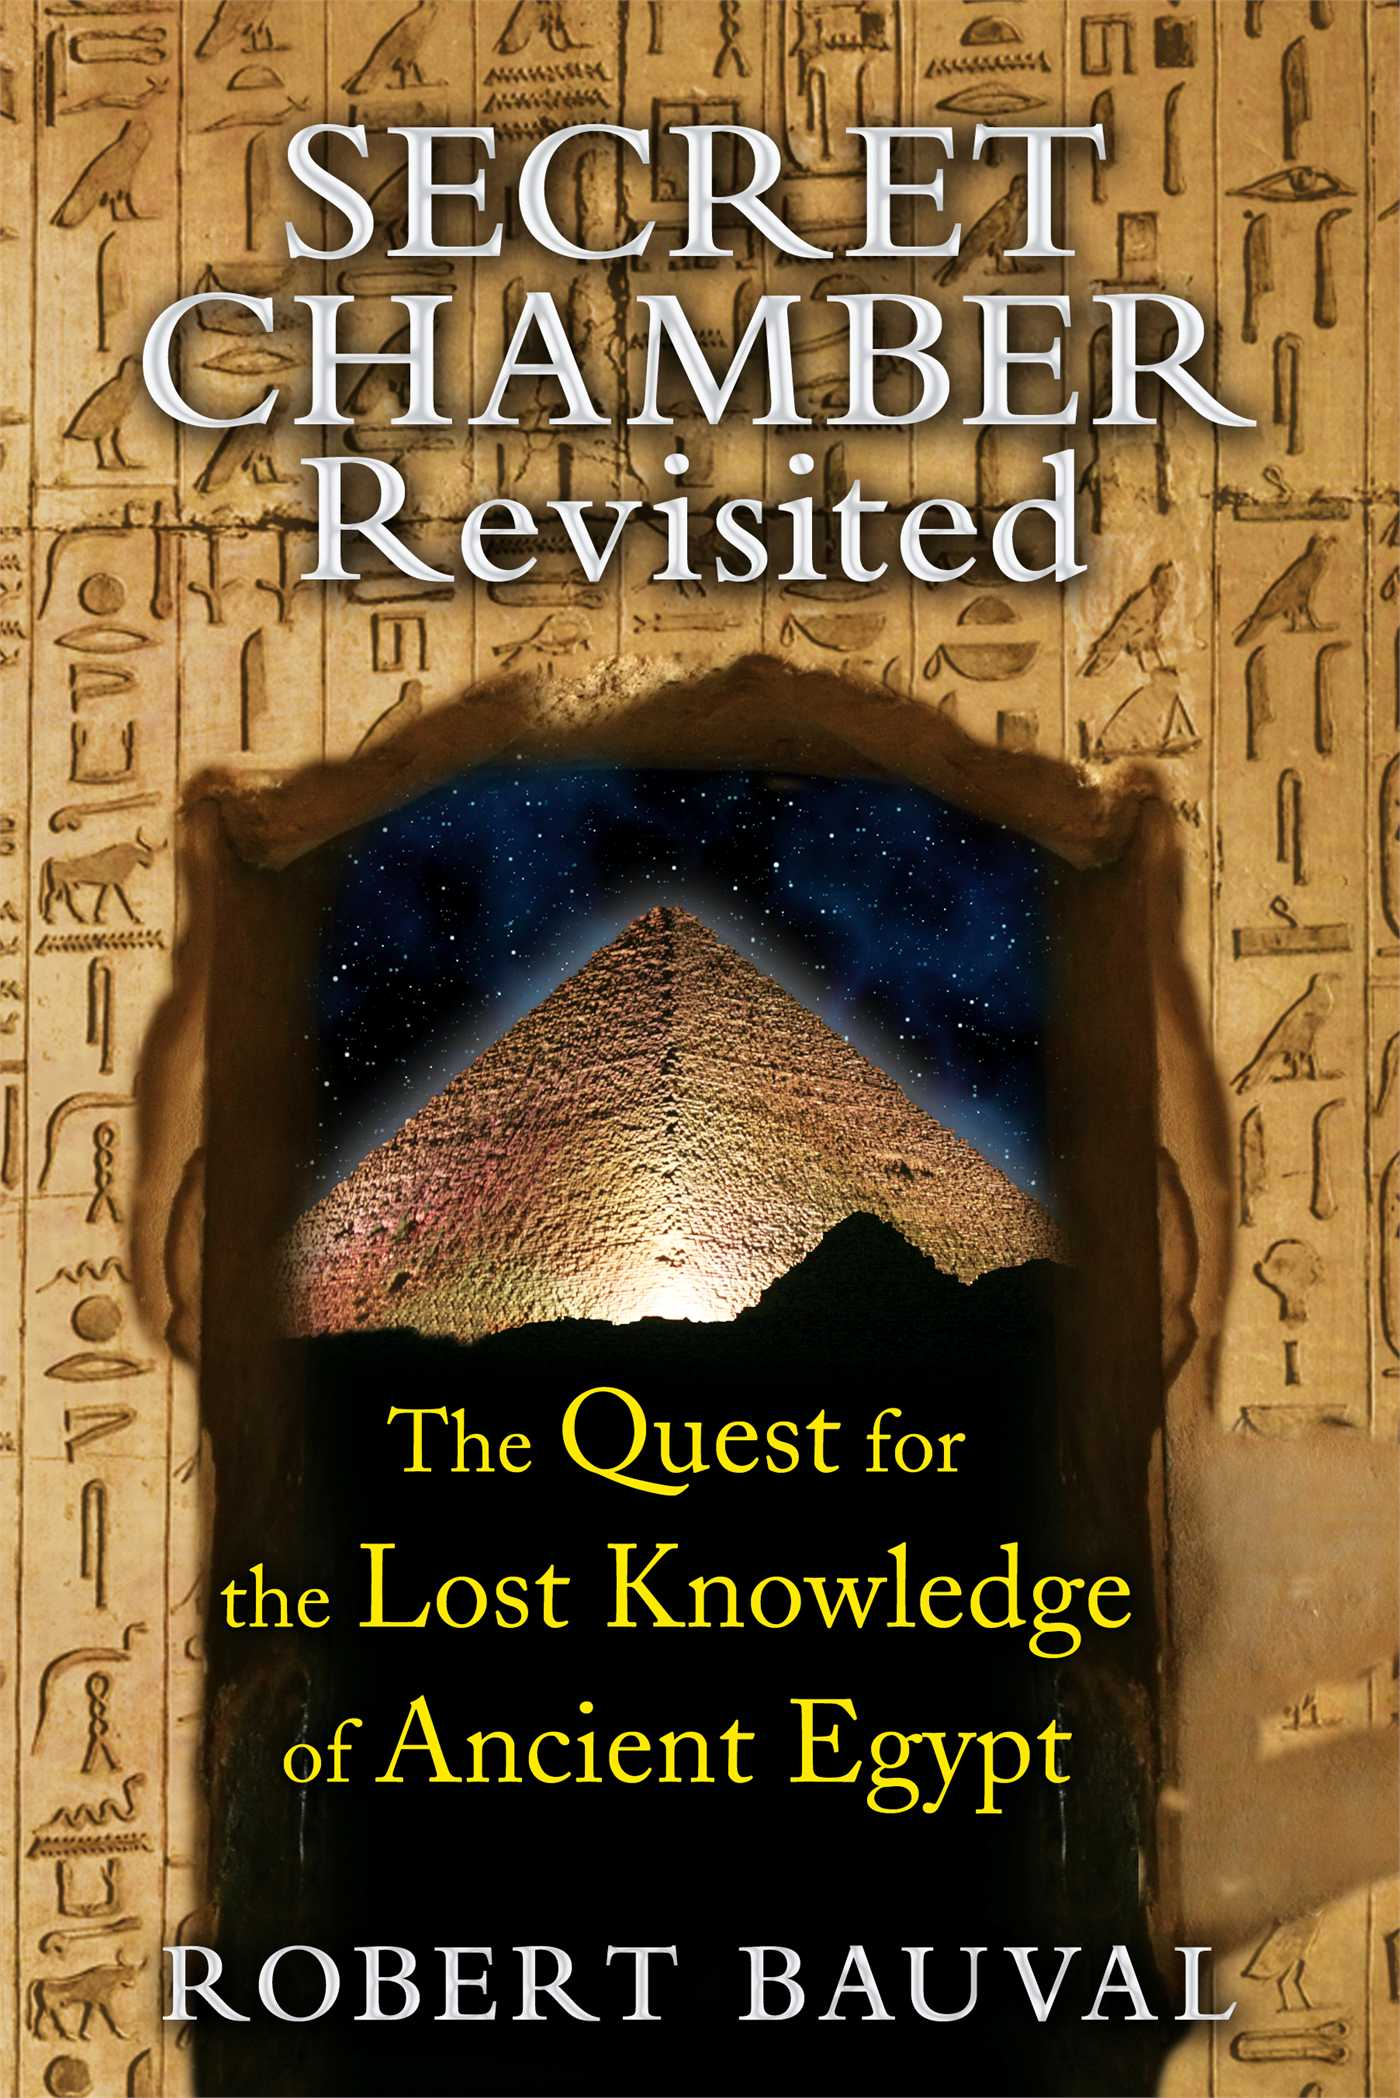 Secret chamber revisited 9781591431923 hr